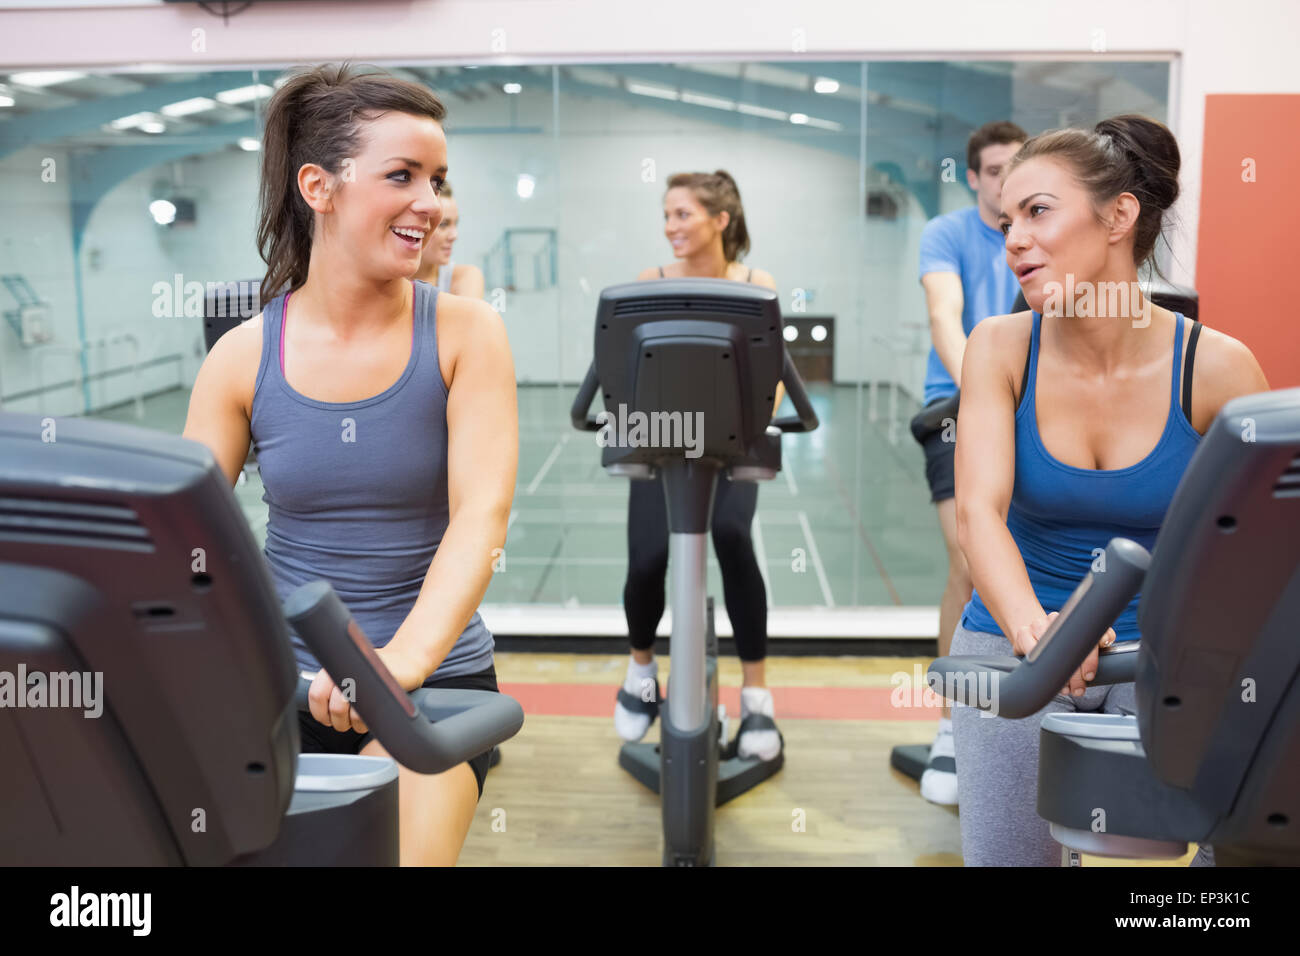 Two women talking  while training in a spinning class - Stock Image